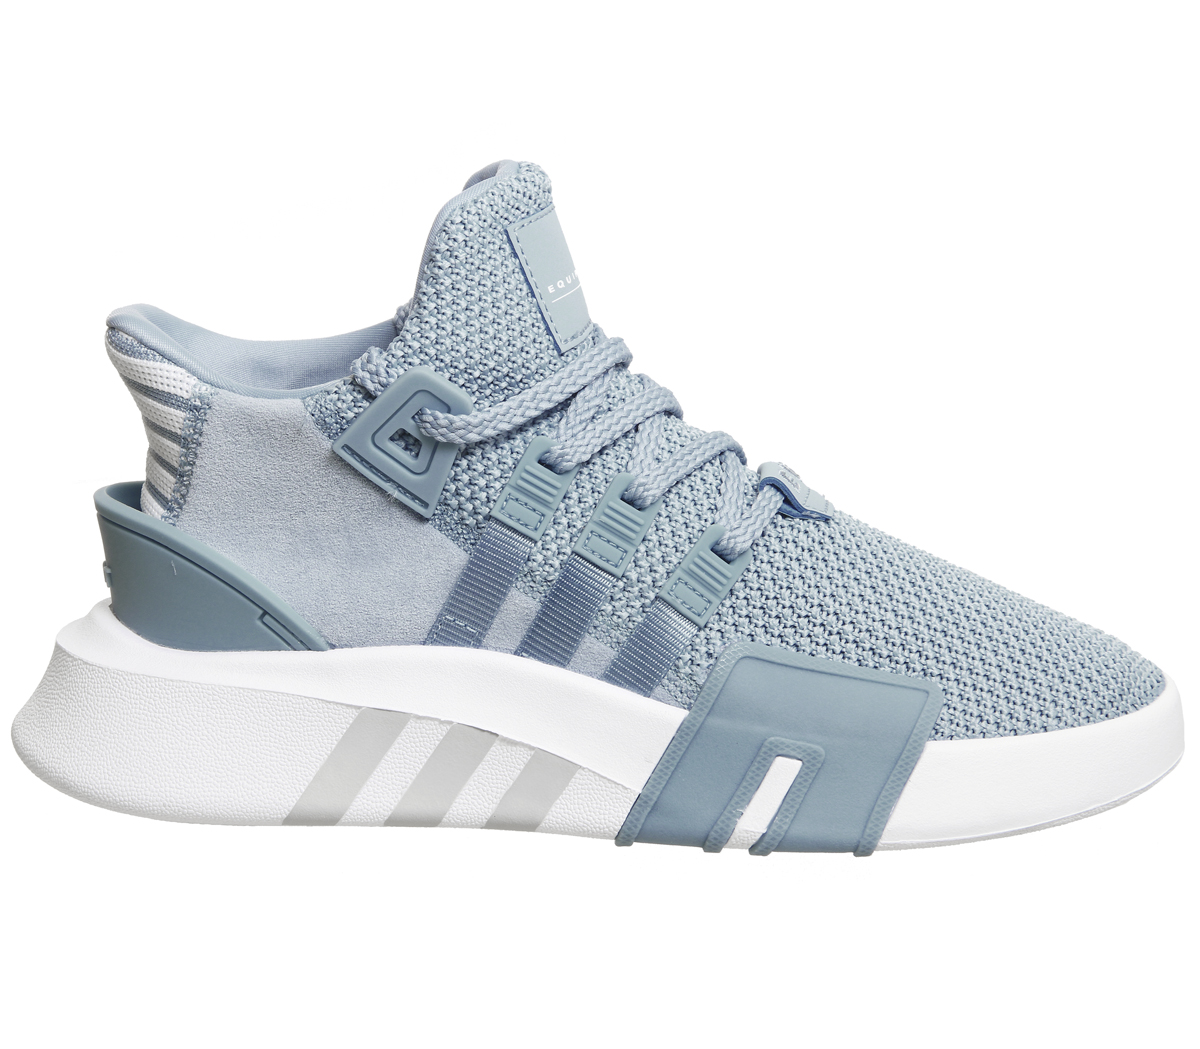 Womens Adidas Eqt Basket Adv Trainers ASH BLUE WHITE F Trainers ... 003366ee7d